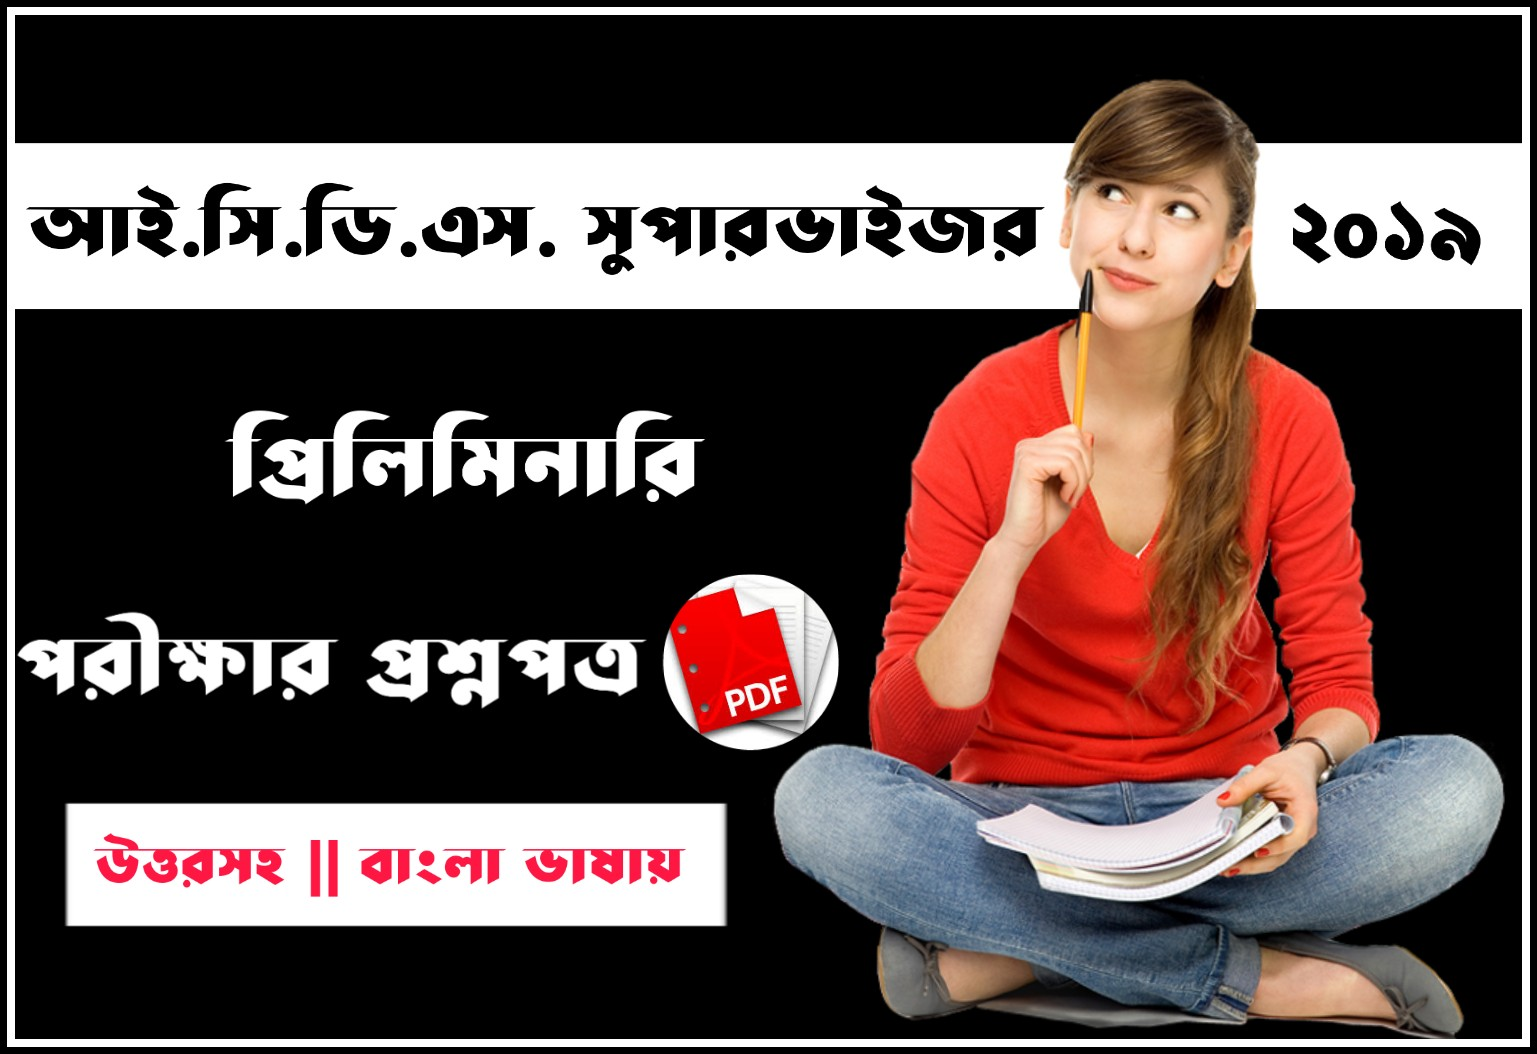 WBPSC ICDS Supervisor 2019 Preliminary Question Paper With Answer In Bengali PDF || WBPSC ICDS Supervisor Previous Year Question Paper || অঙ্গনওয়াড়ী সুপারভাইজর পরীক্ষার প্রশ্নপত্র